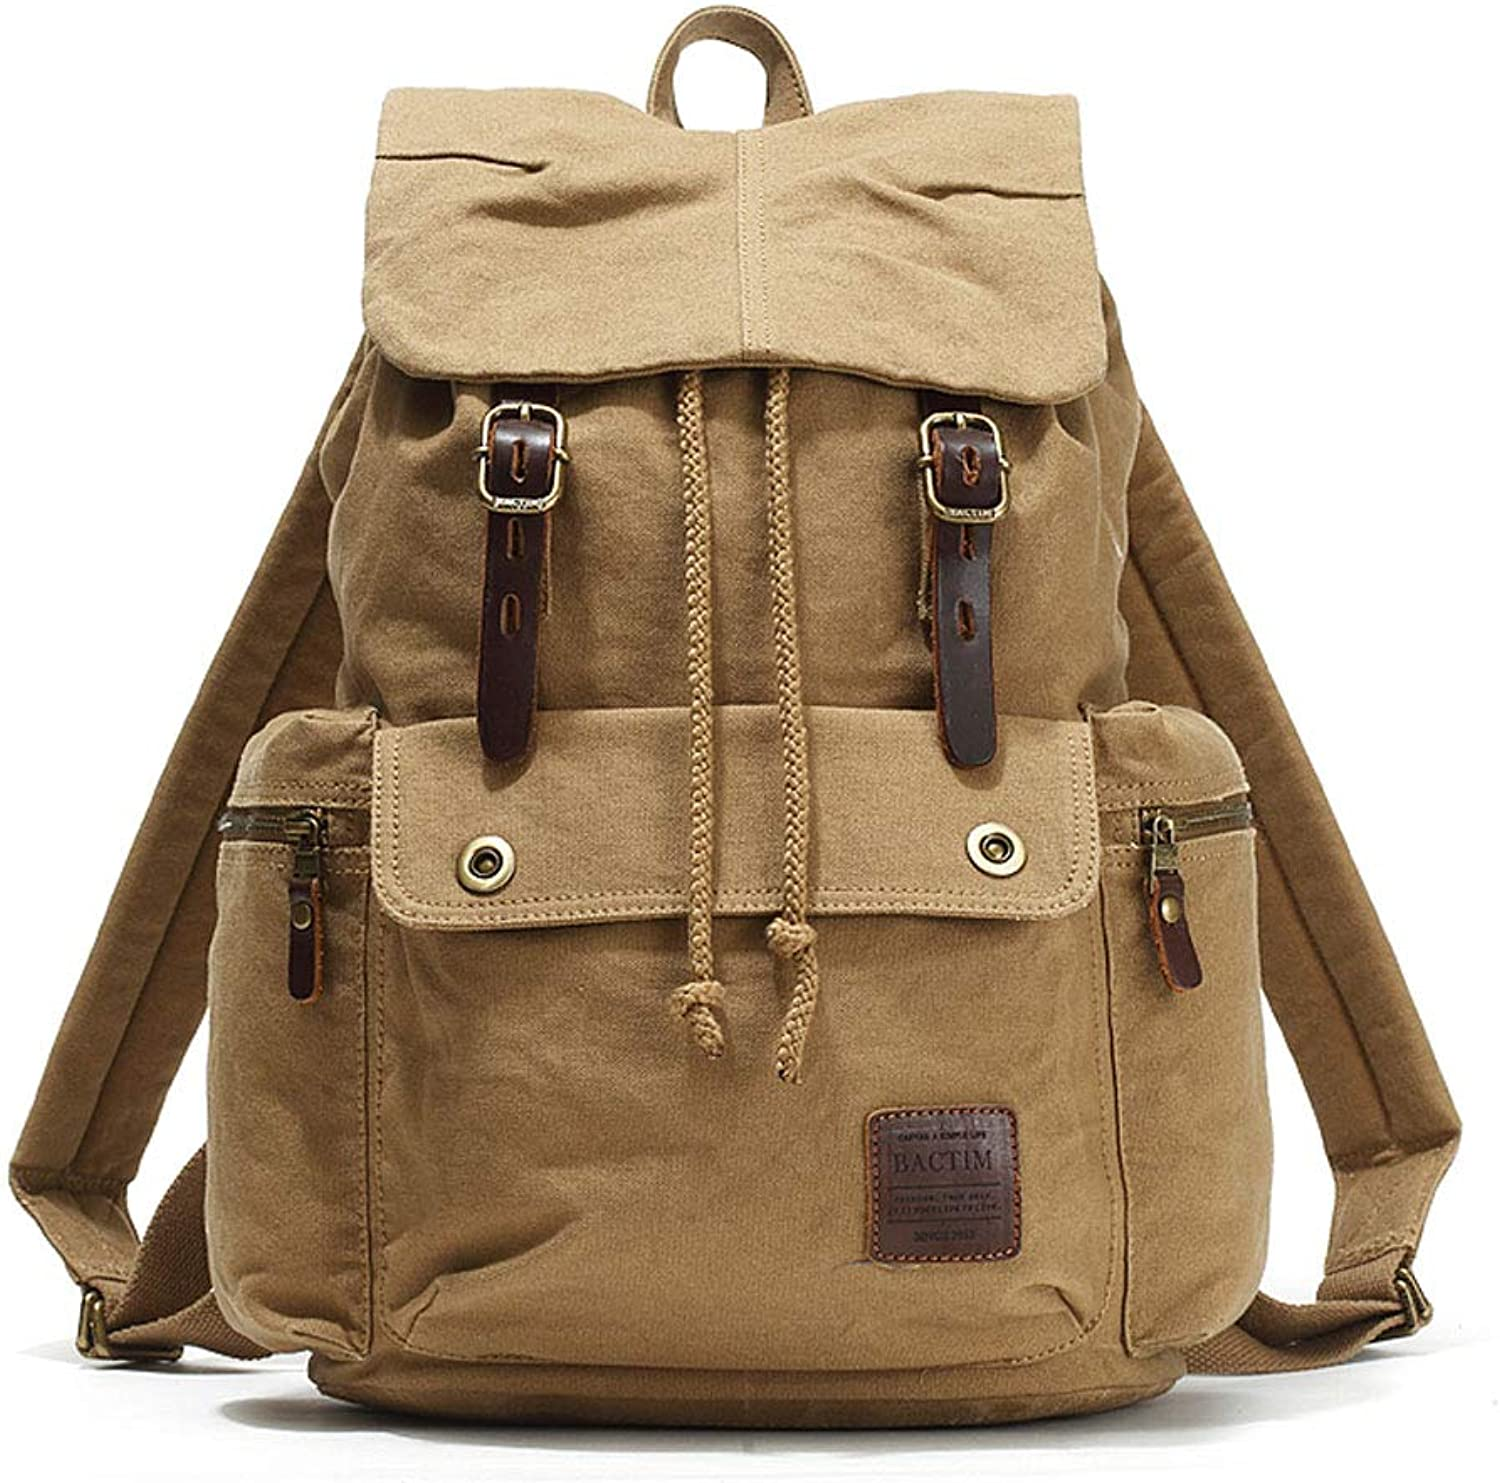 MXD Canvas Bag Men's Fashion Retro Style Casual Outdoor Travel Male Youth Khaki Backpack Wild